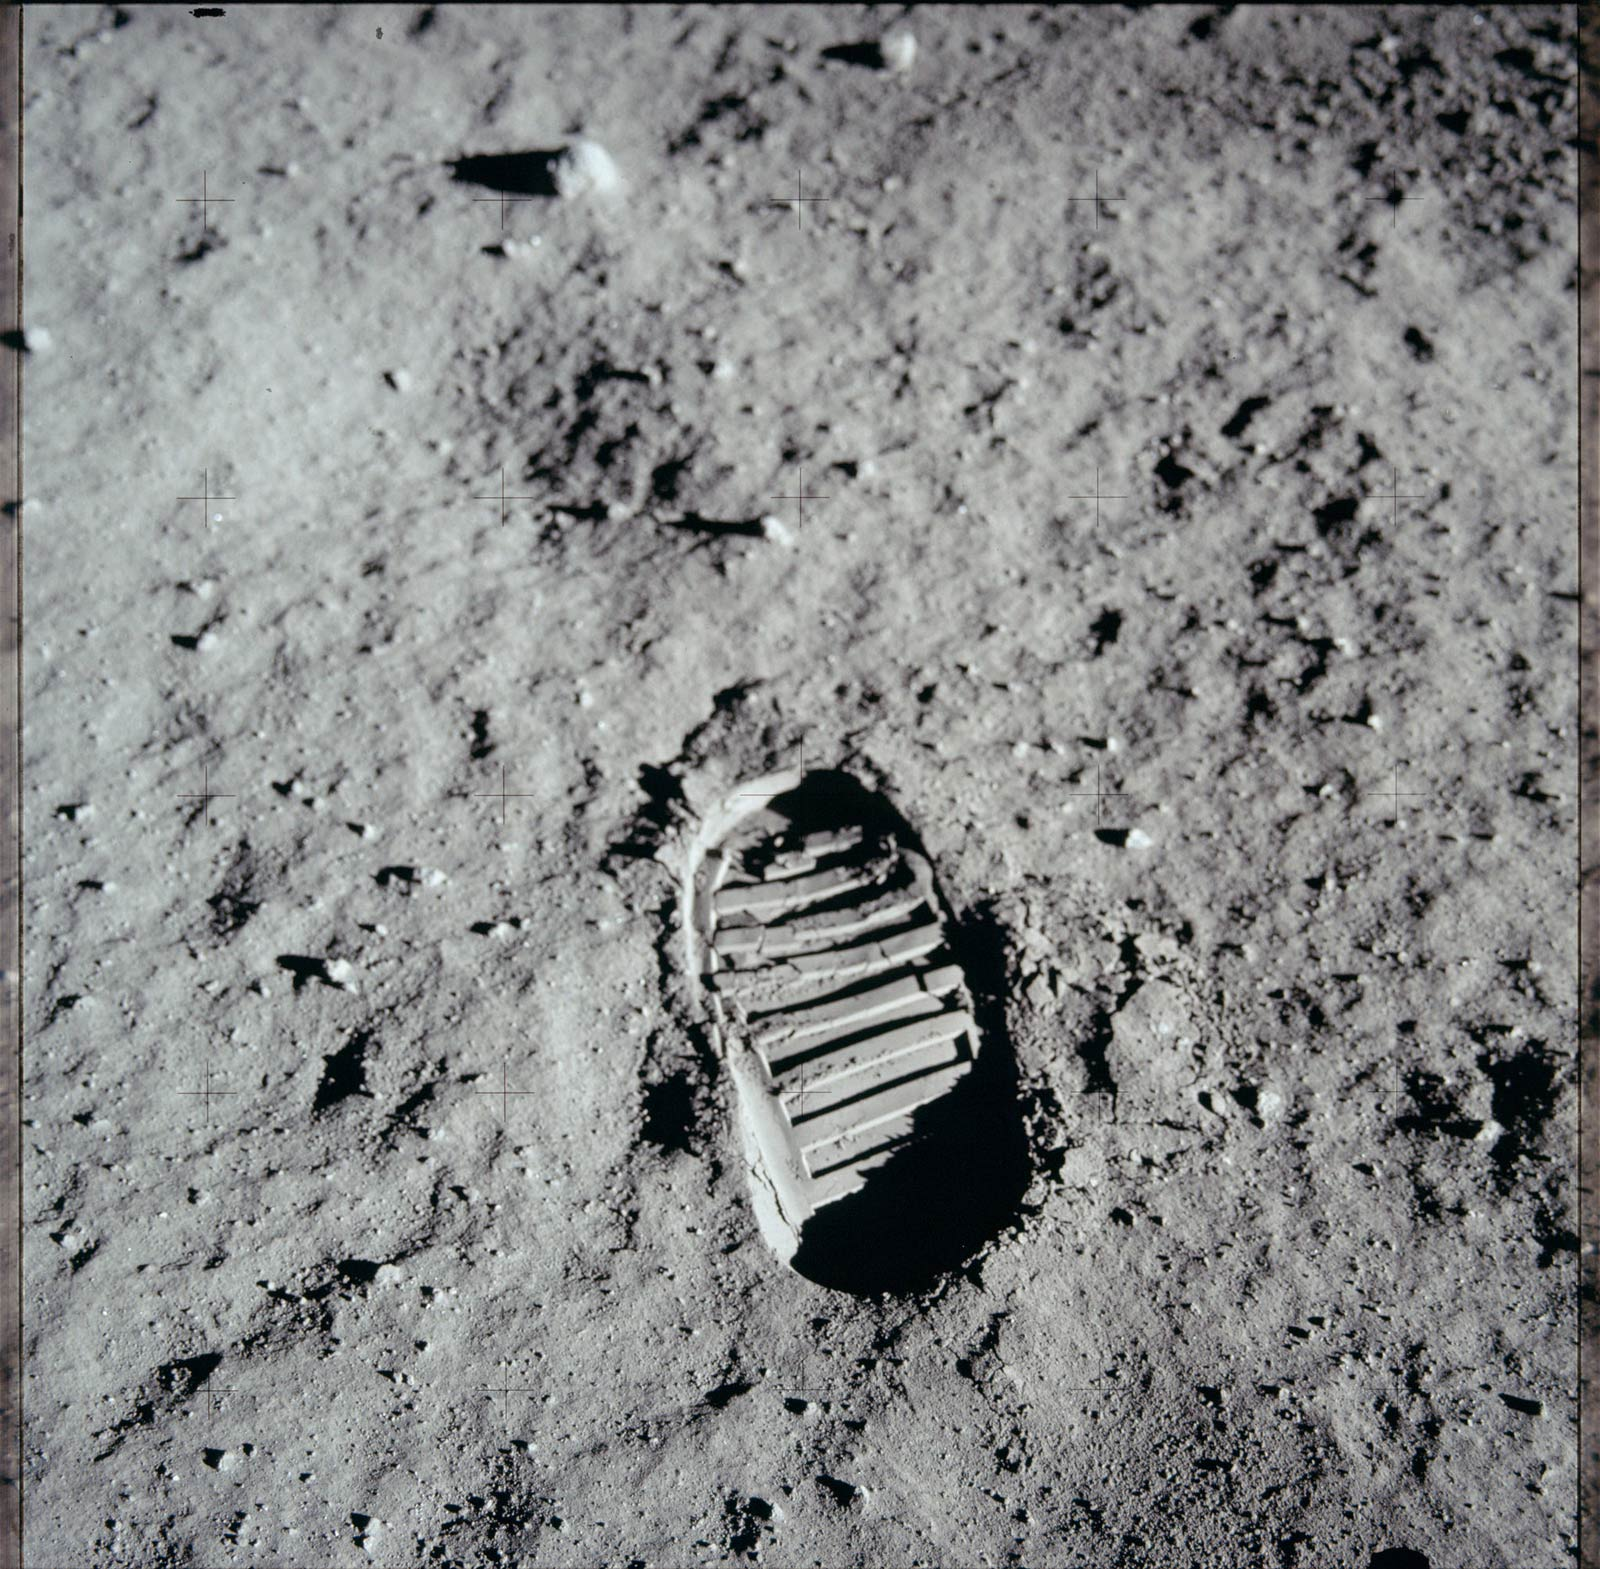 footprint-on-the-moon